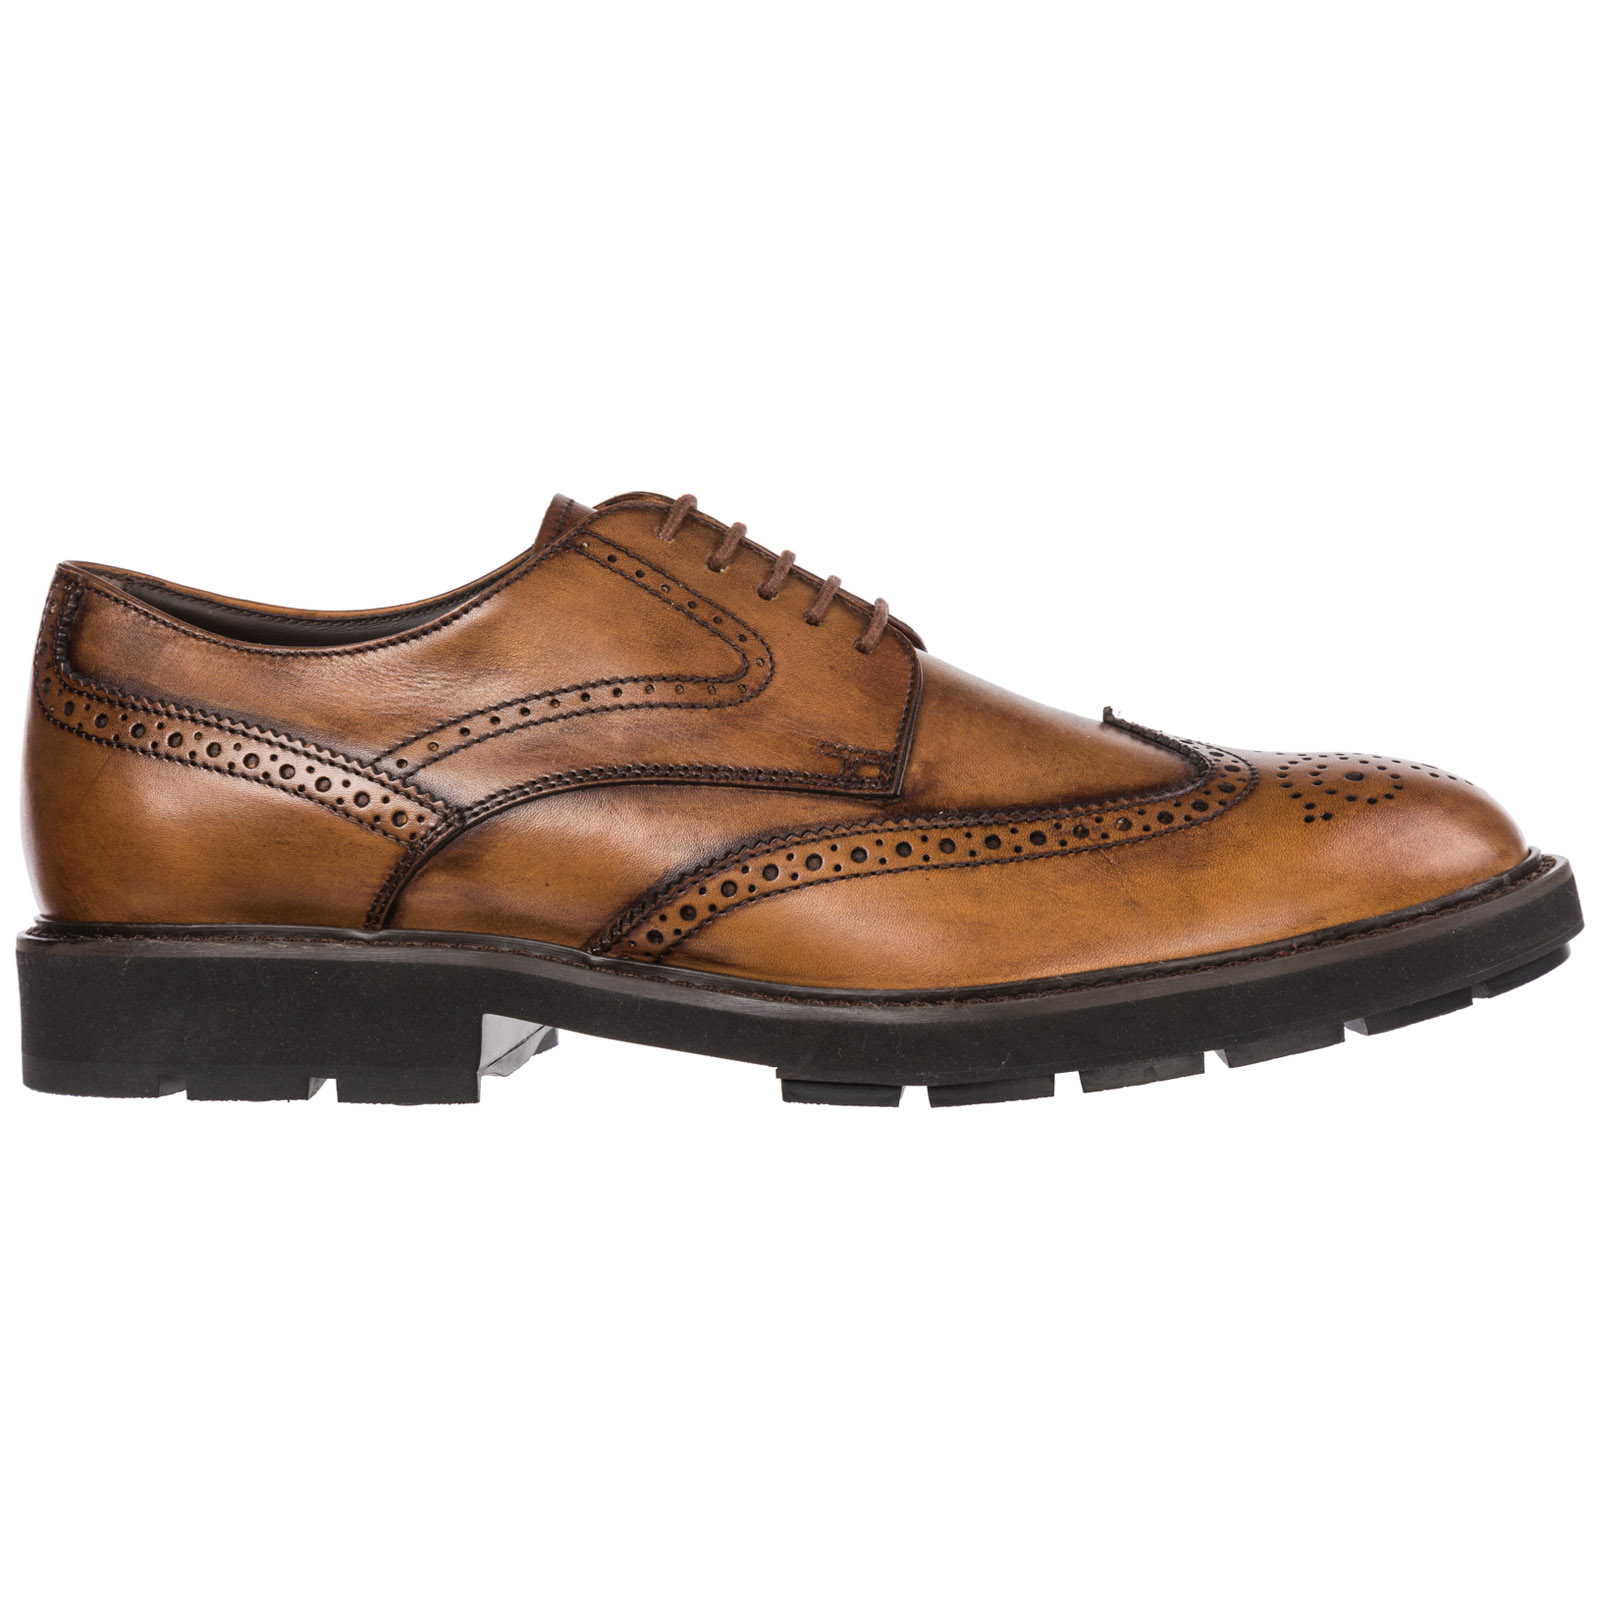 ac4bc64350 Men's classic leather lace up laced formal shoes brogue ...